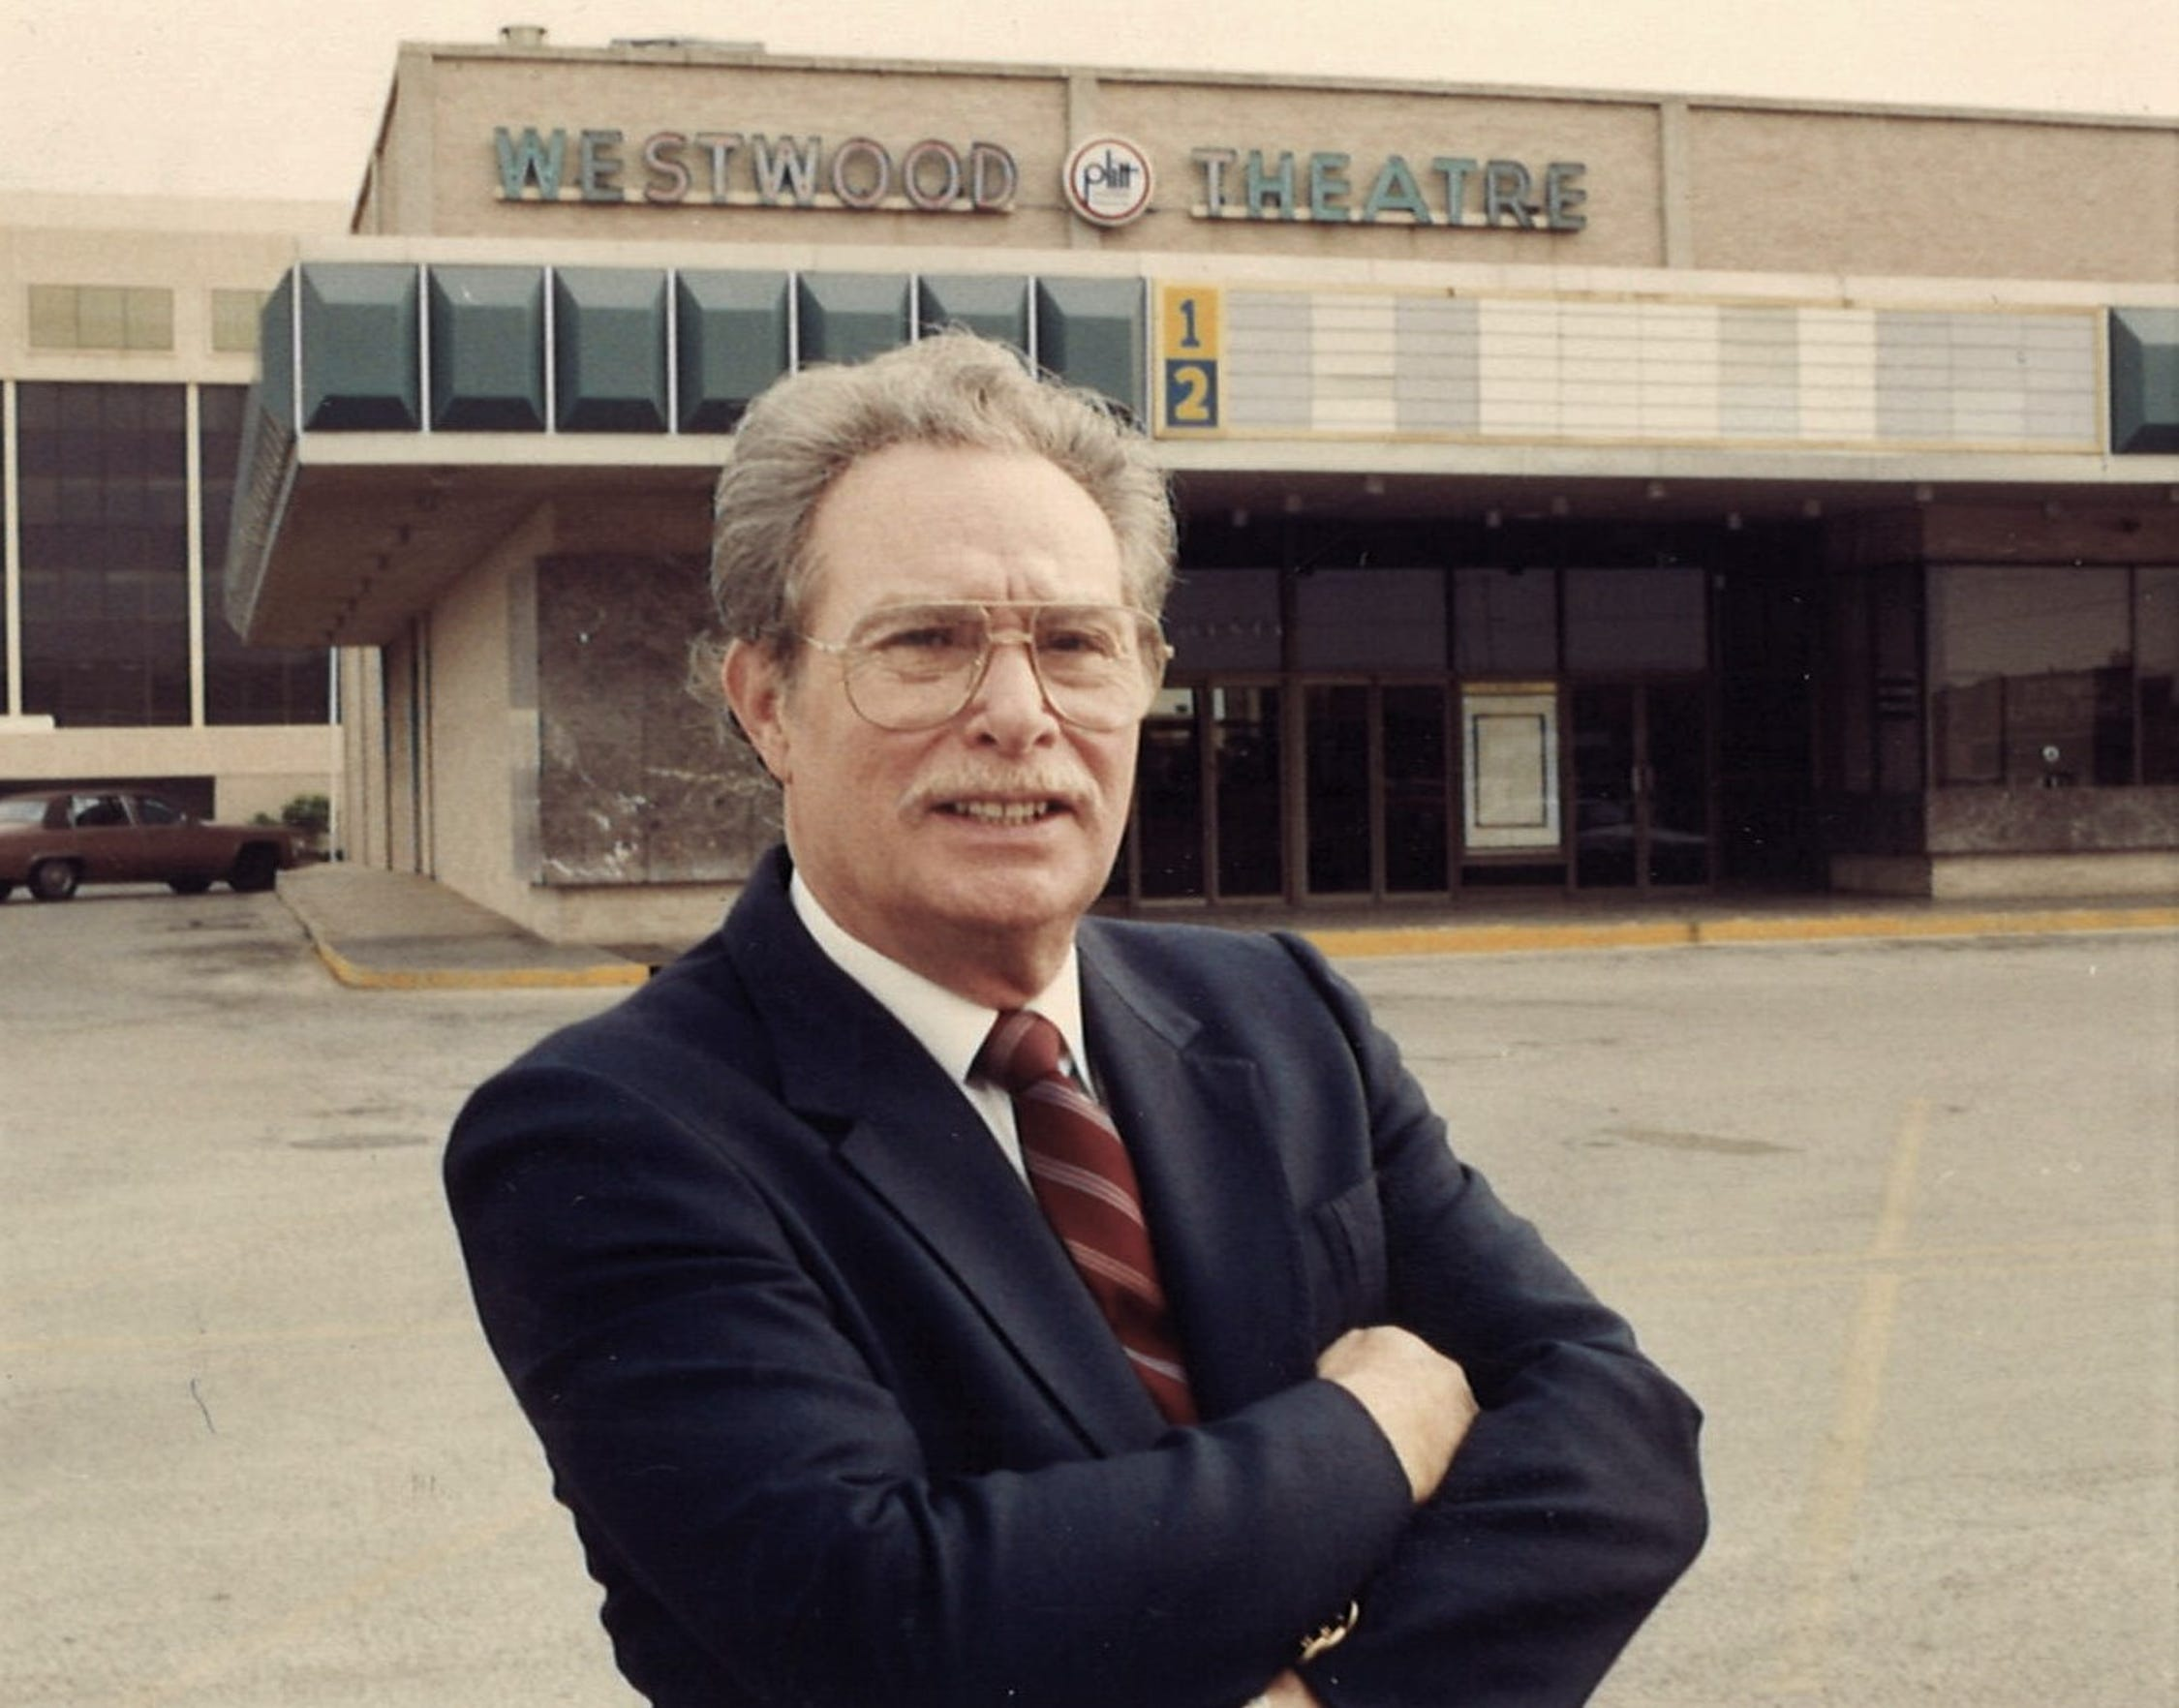 Frank Sheffield, pictured outside the Westwood Theatre in 1991, when he was to turn the former single-screen, first-run theater to a two-screen, discount movie house.